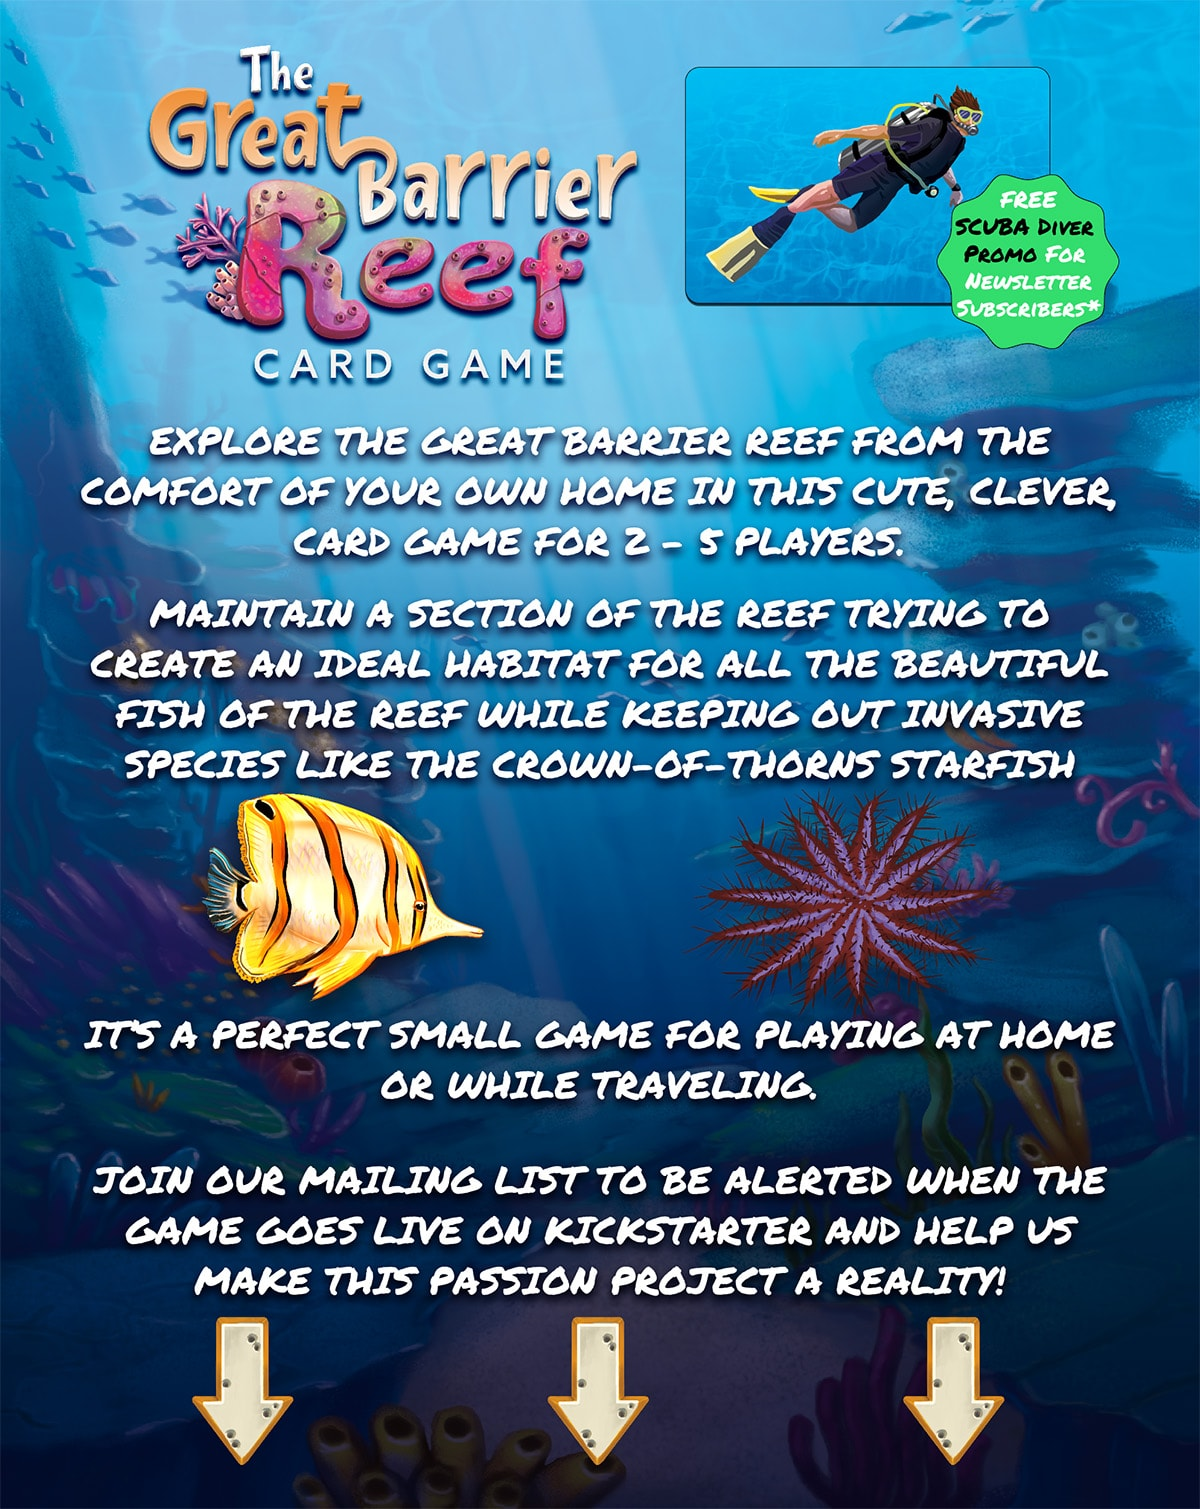 Inform visitors about the Great Barrier Reef Card Game and solicit newsletter signups